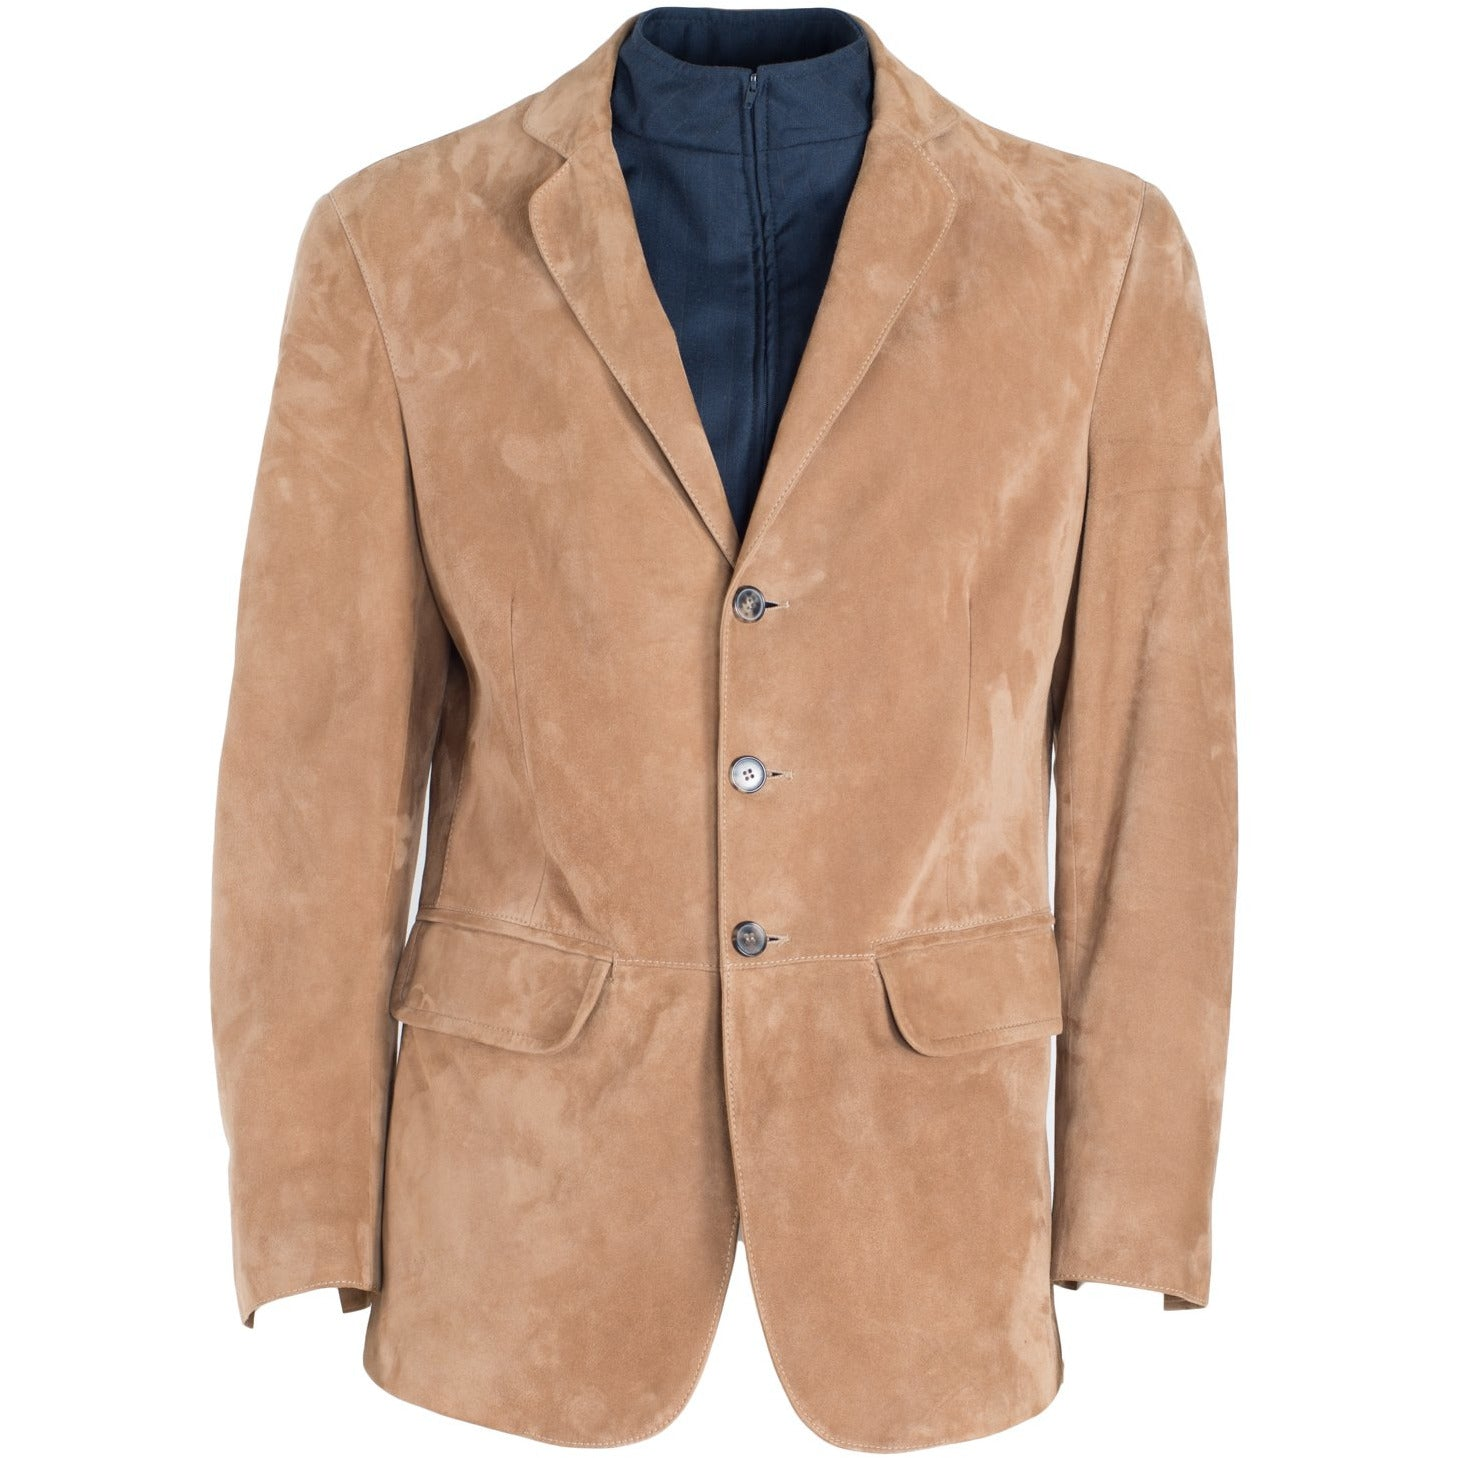 Jennifer Tattanelli crafted in Florence in her Artisan Atelier this men leather jacket,meticulously designed, contemporary and sartorial finished, this soft suede blazer is special and unique